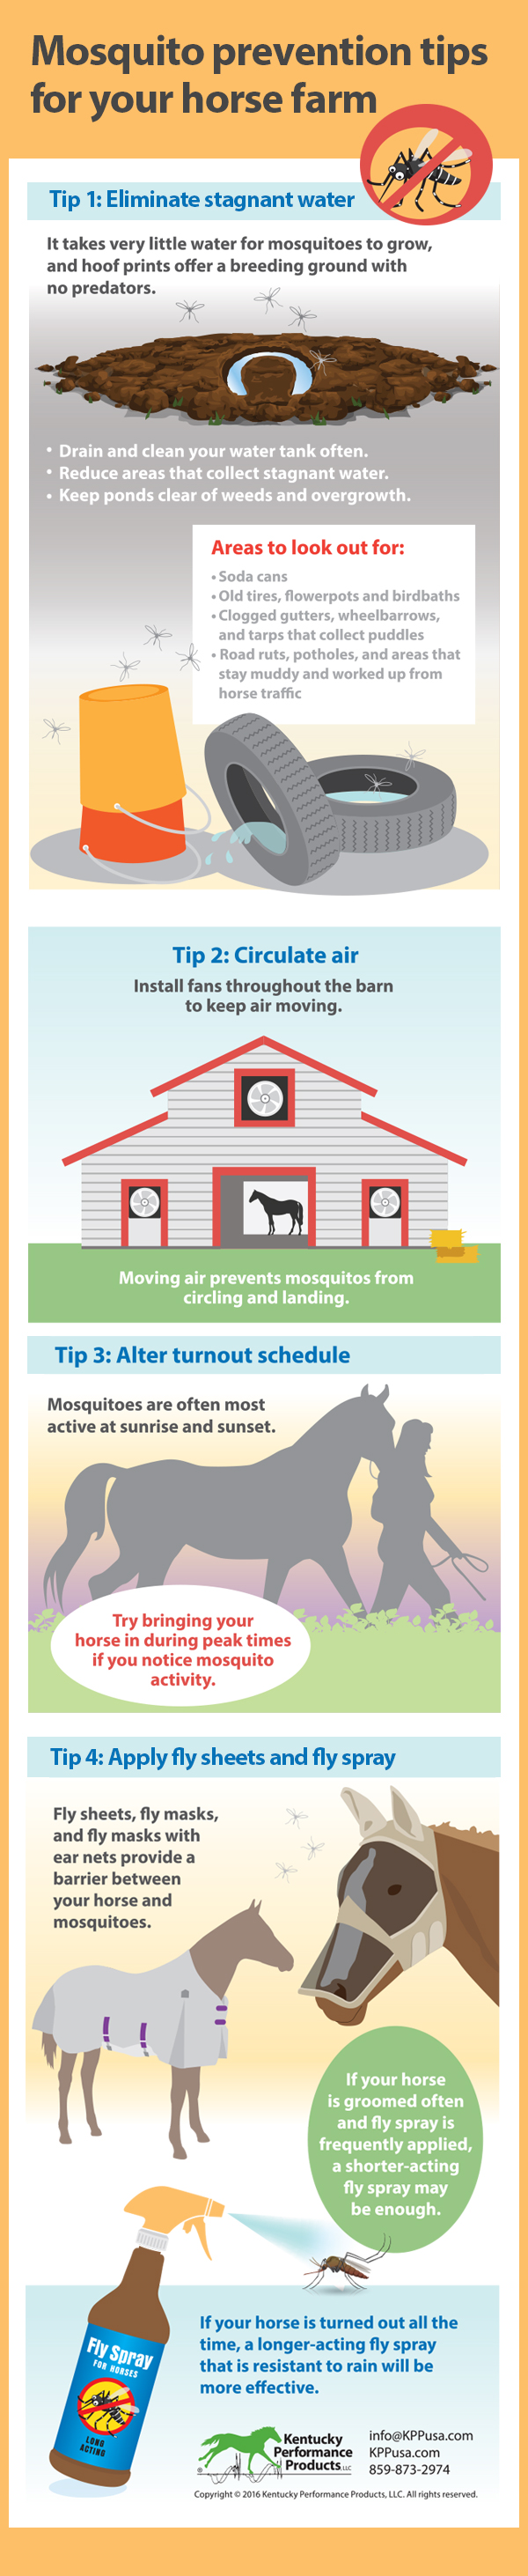 Mosquito-prevention-tips-for-your-horse-farm-16-186